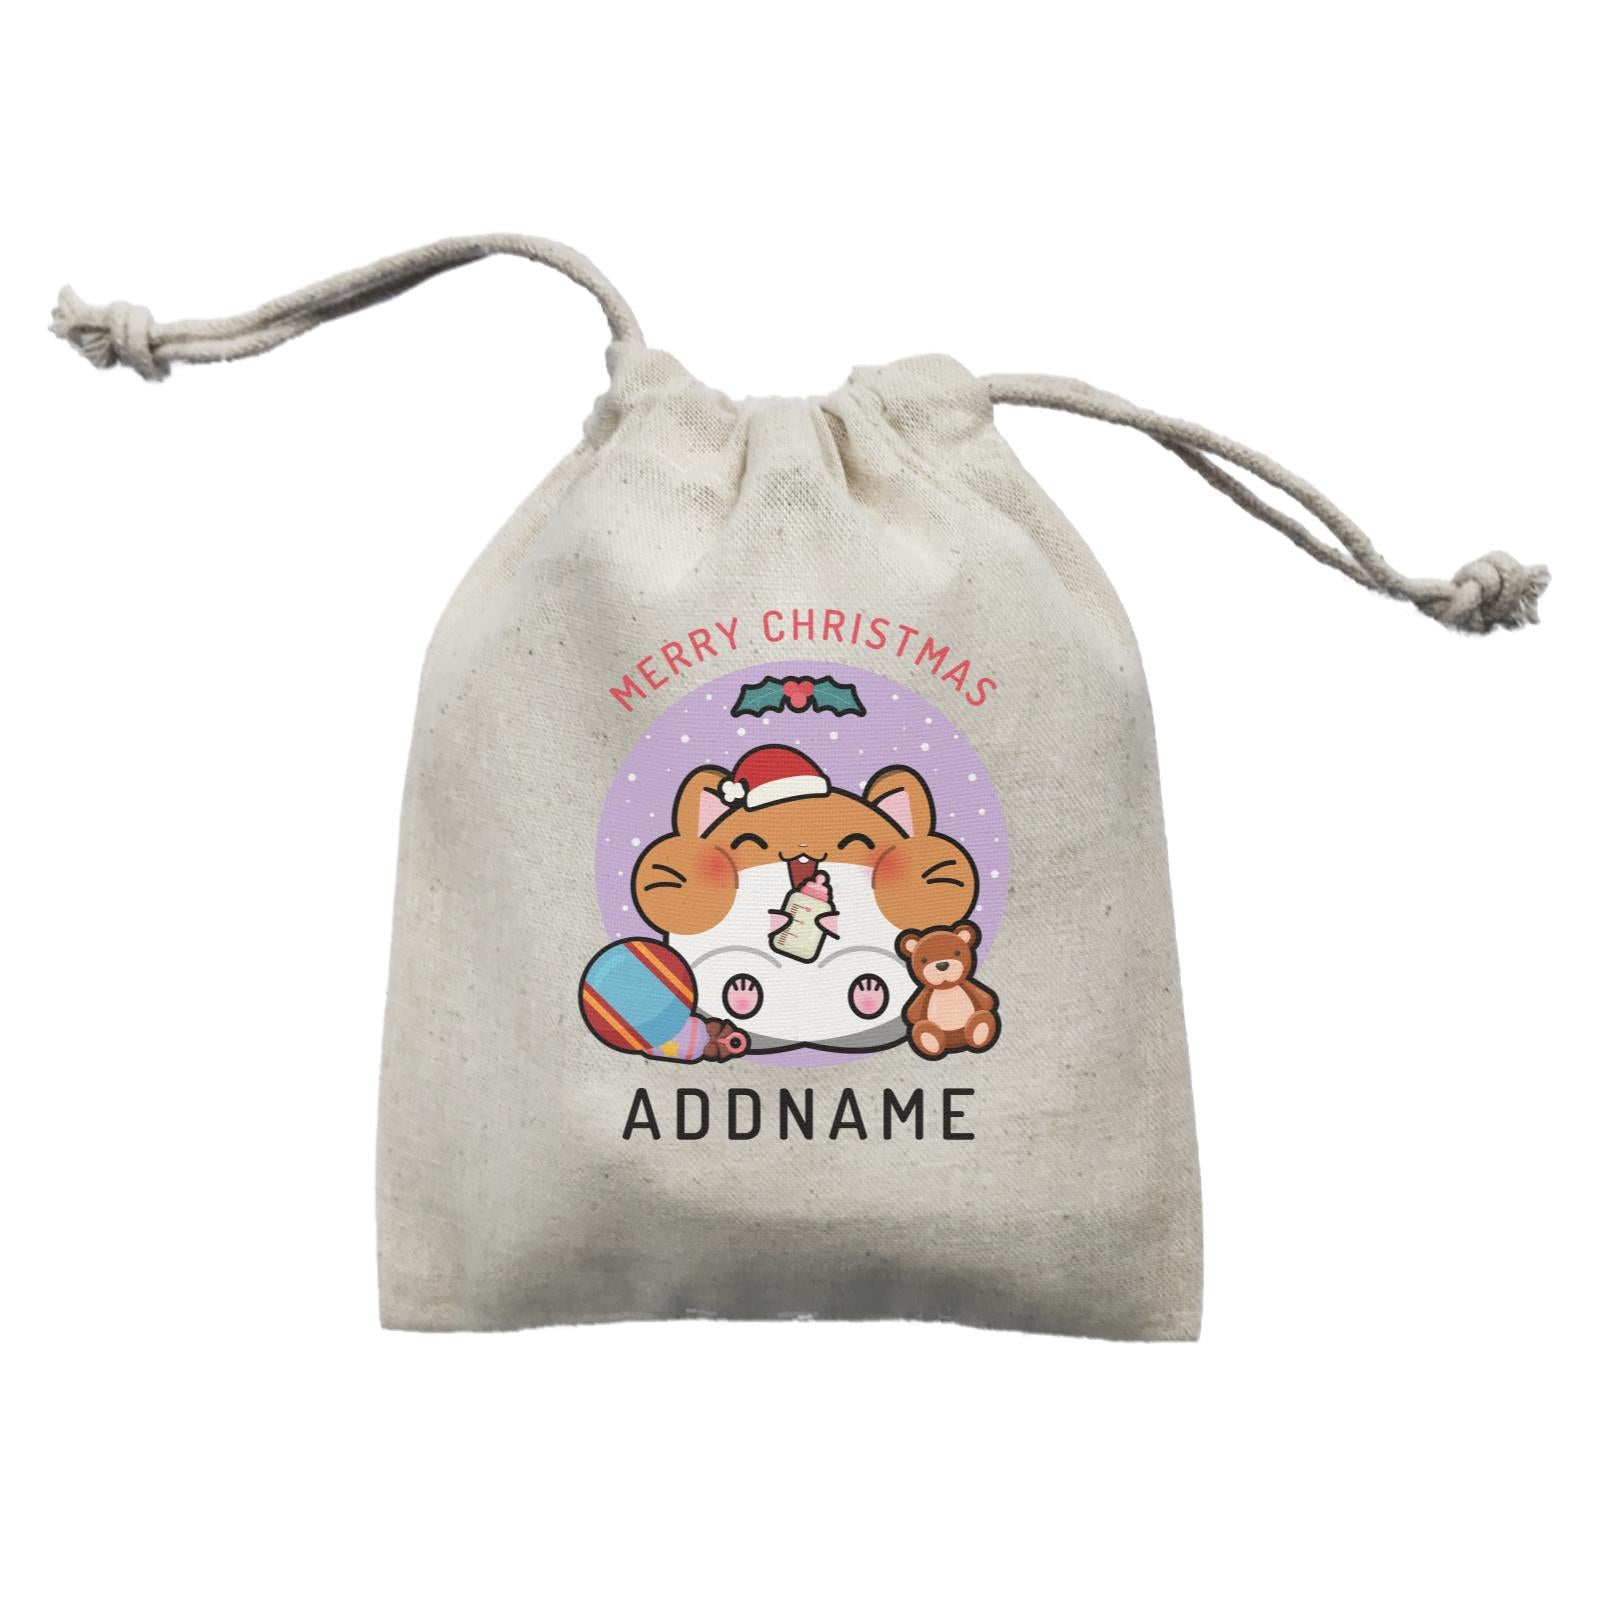 Merry Christmas Cute Santa Baby Hamster Mini Accessories Mini Pouch